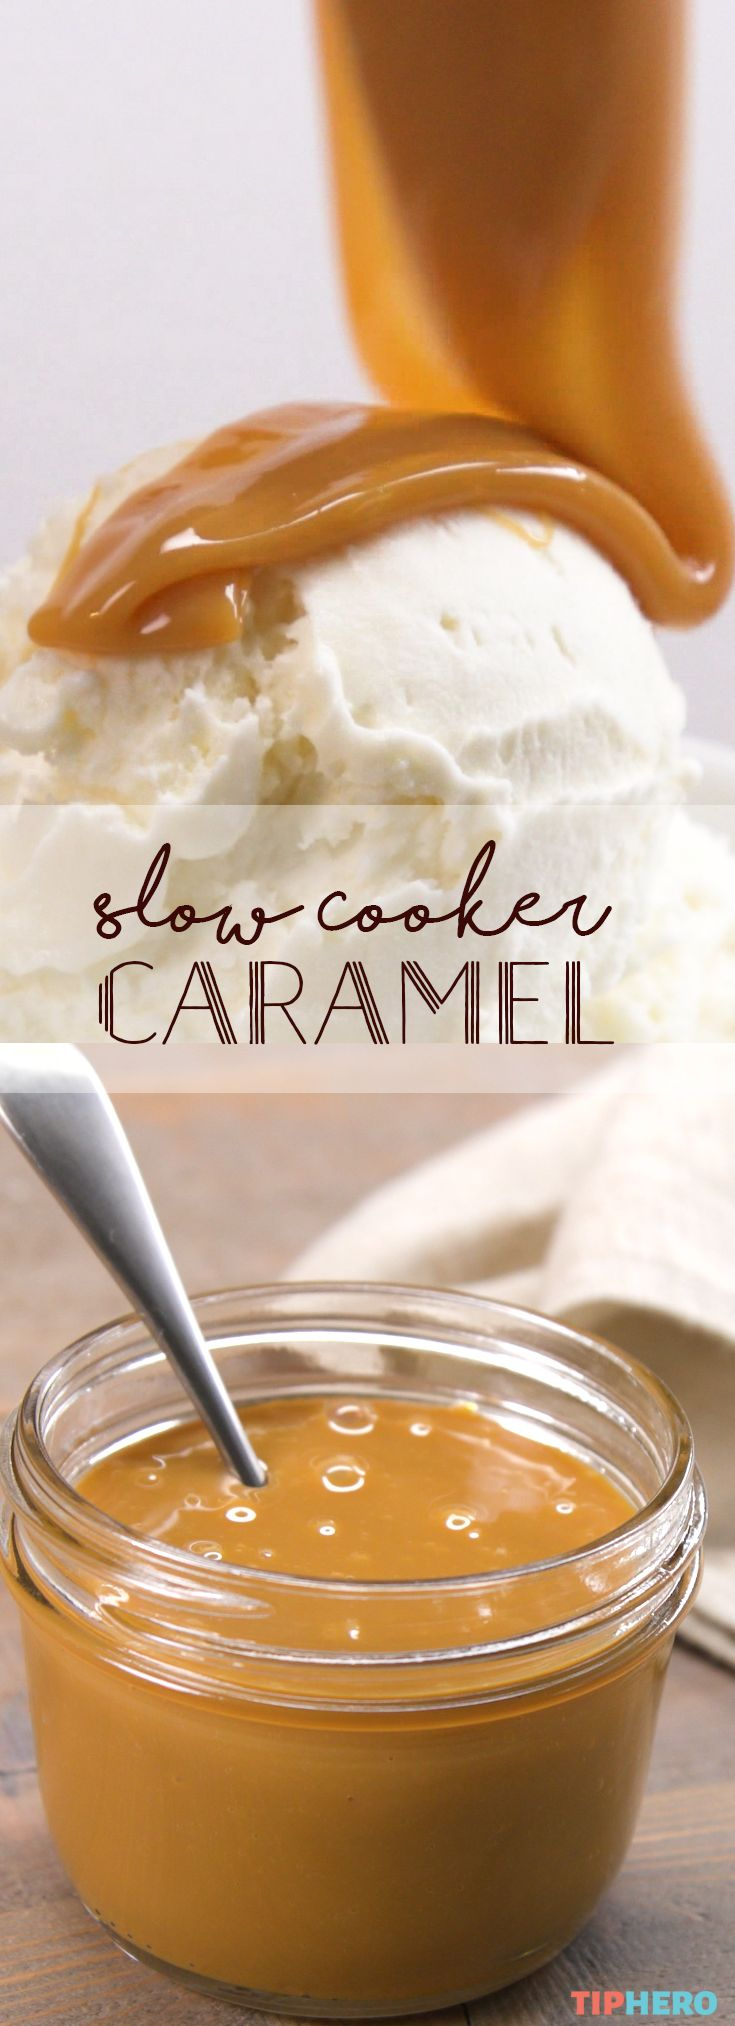 Caramel you can make at home, in your slow cooker? Yes, please! All it takes is some sweetened condensed milk and a little patience - waiting the 8 hours while your caramel cooks up. So worth it though! Perfect for drizzling on ice cream, waffles, apples or your favorite confection for a little extra creamy sweetness. Click for the video and recipe!